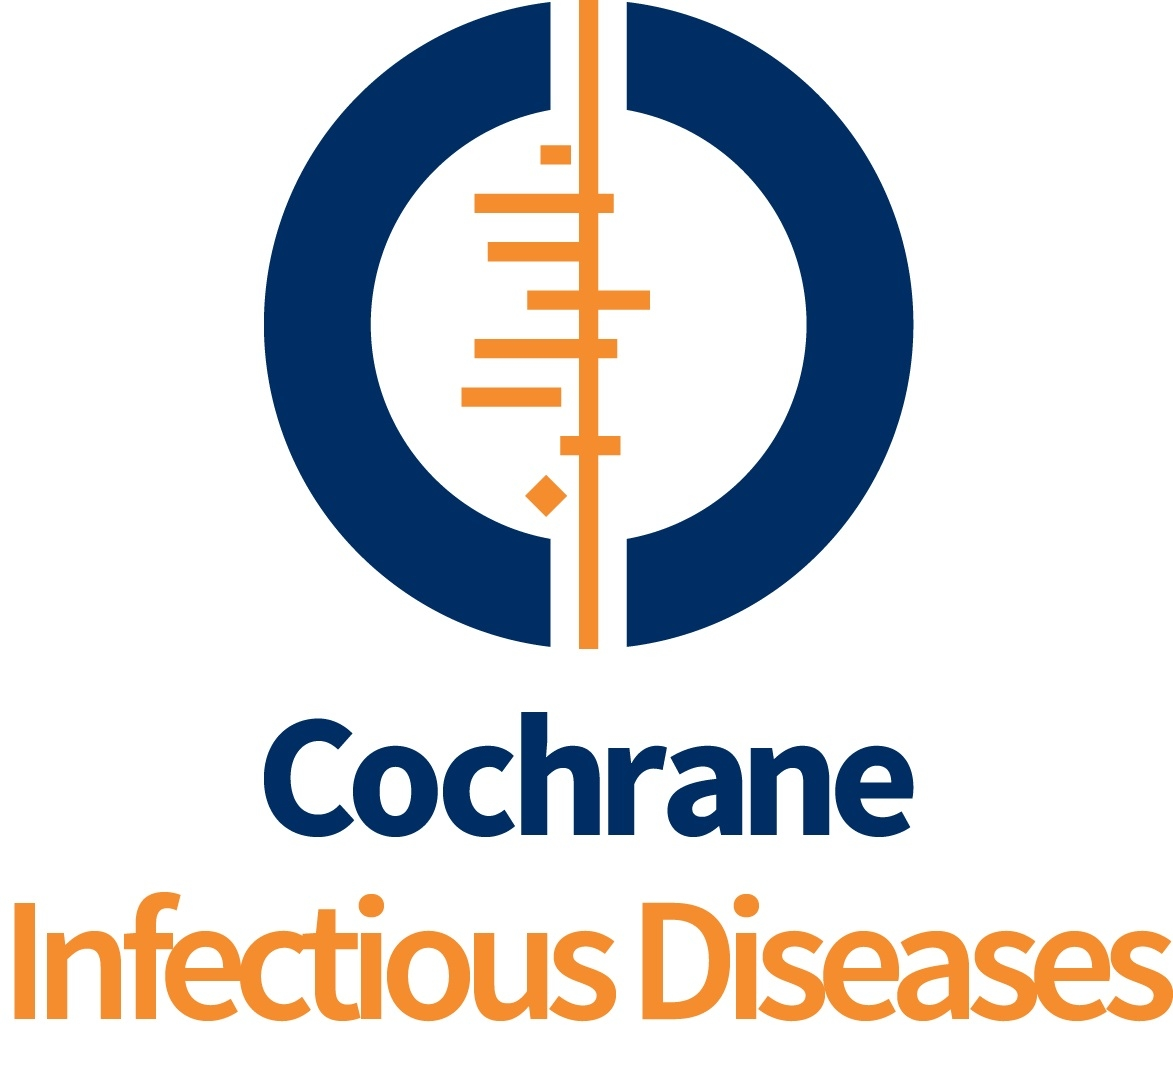 The logo of the Cochrane Infectious Disease Group